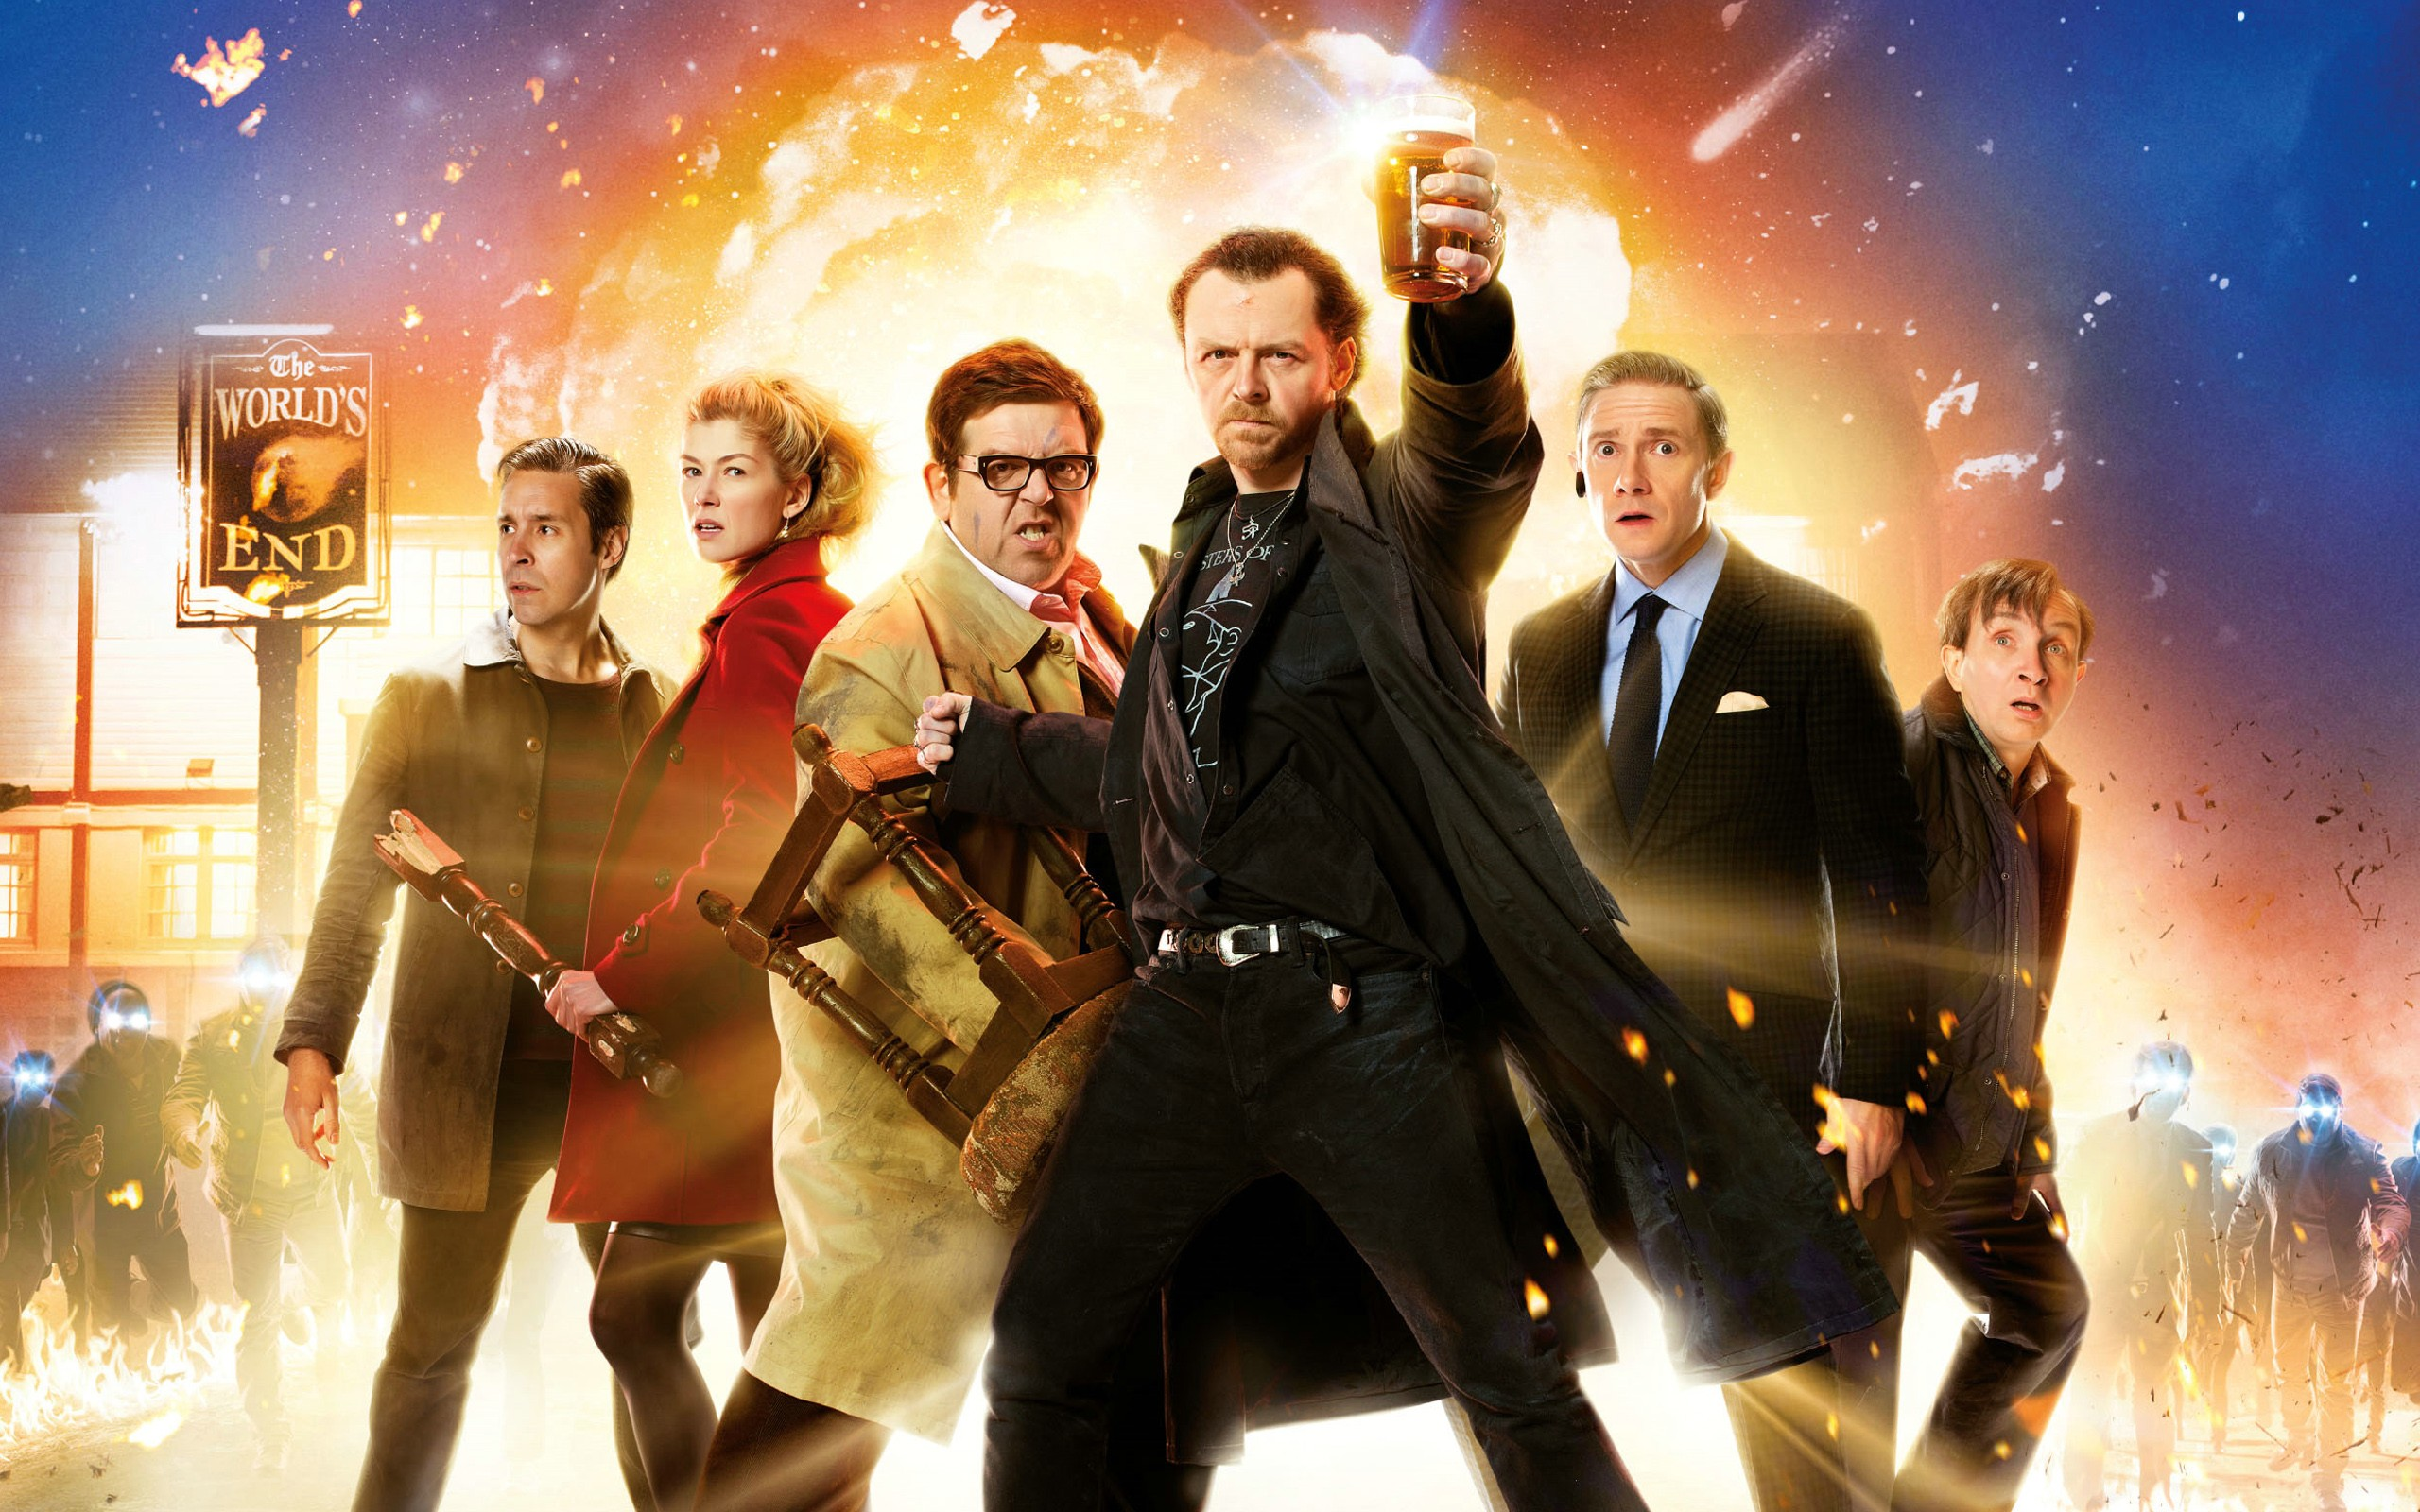 The Worlds End Movie Wide